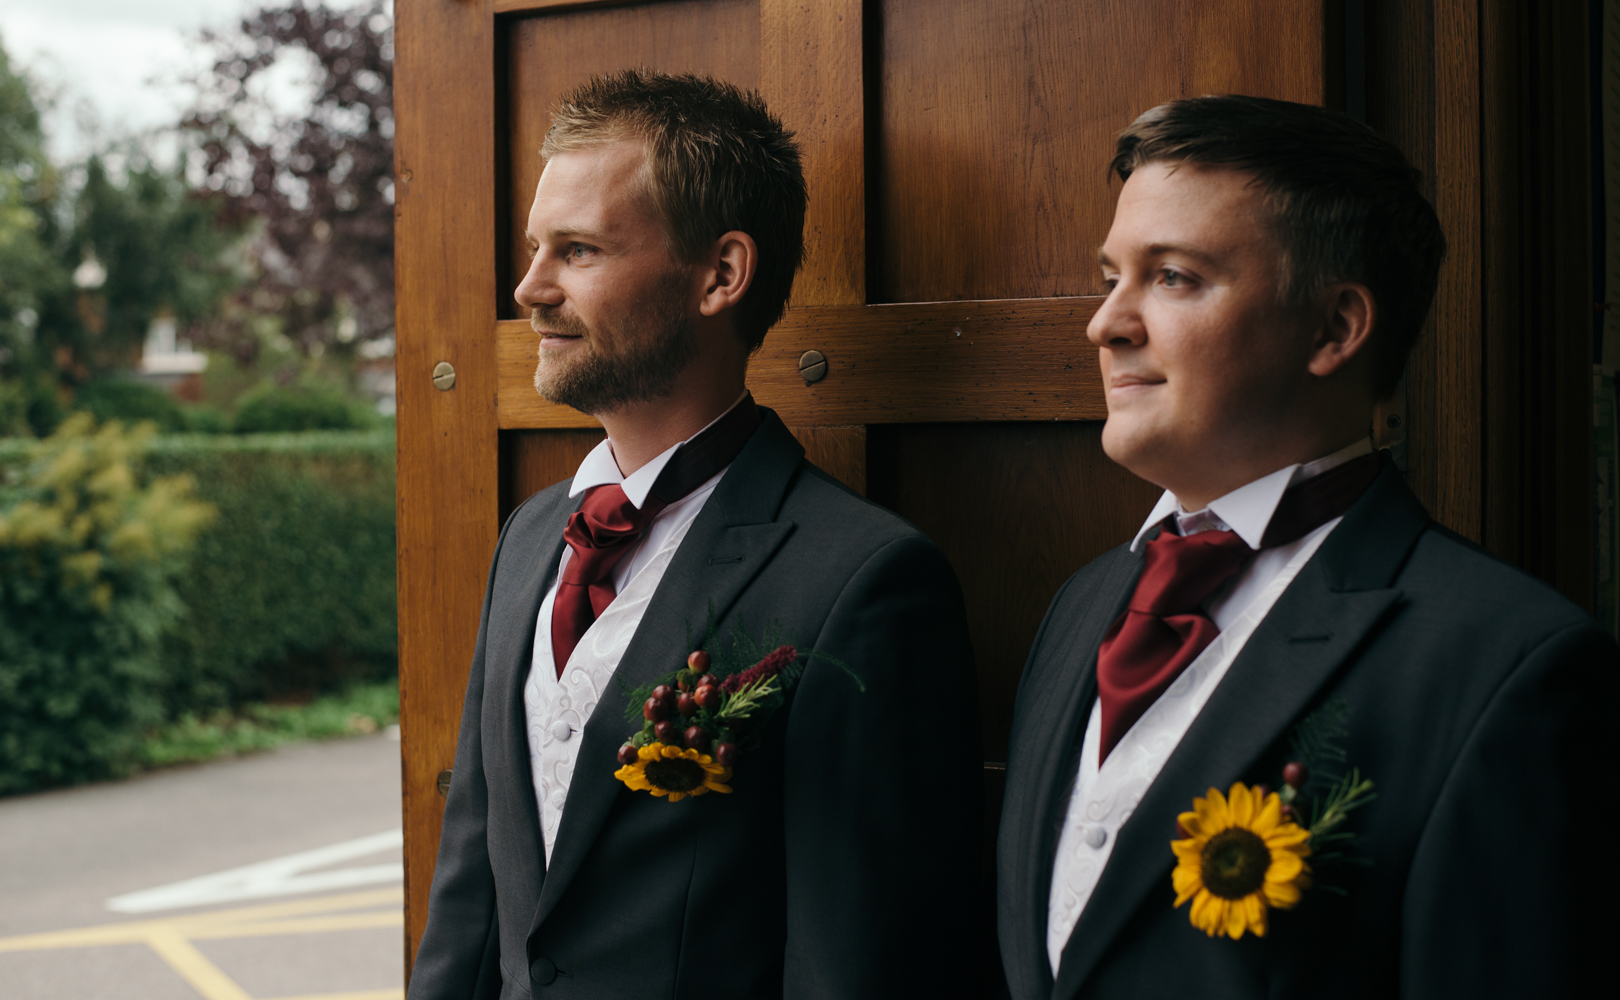 The groom and best man standing in the church doorway welcoming guests